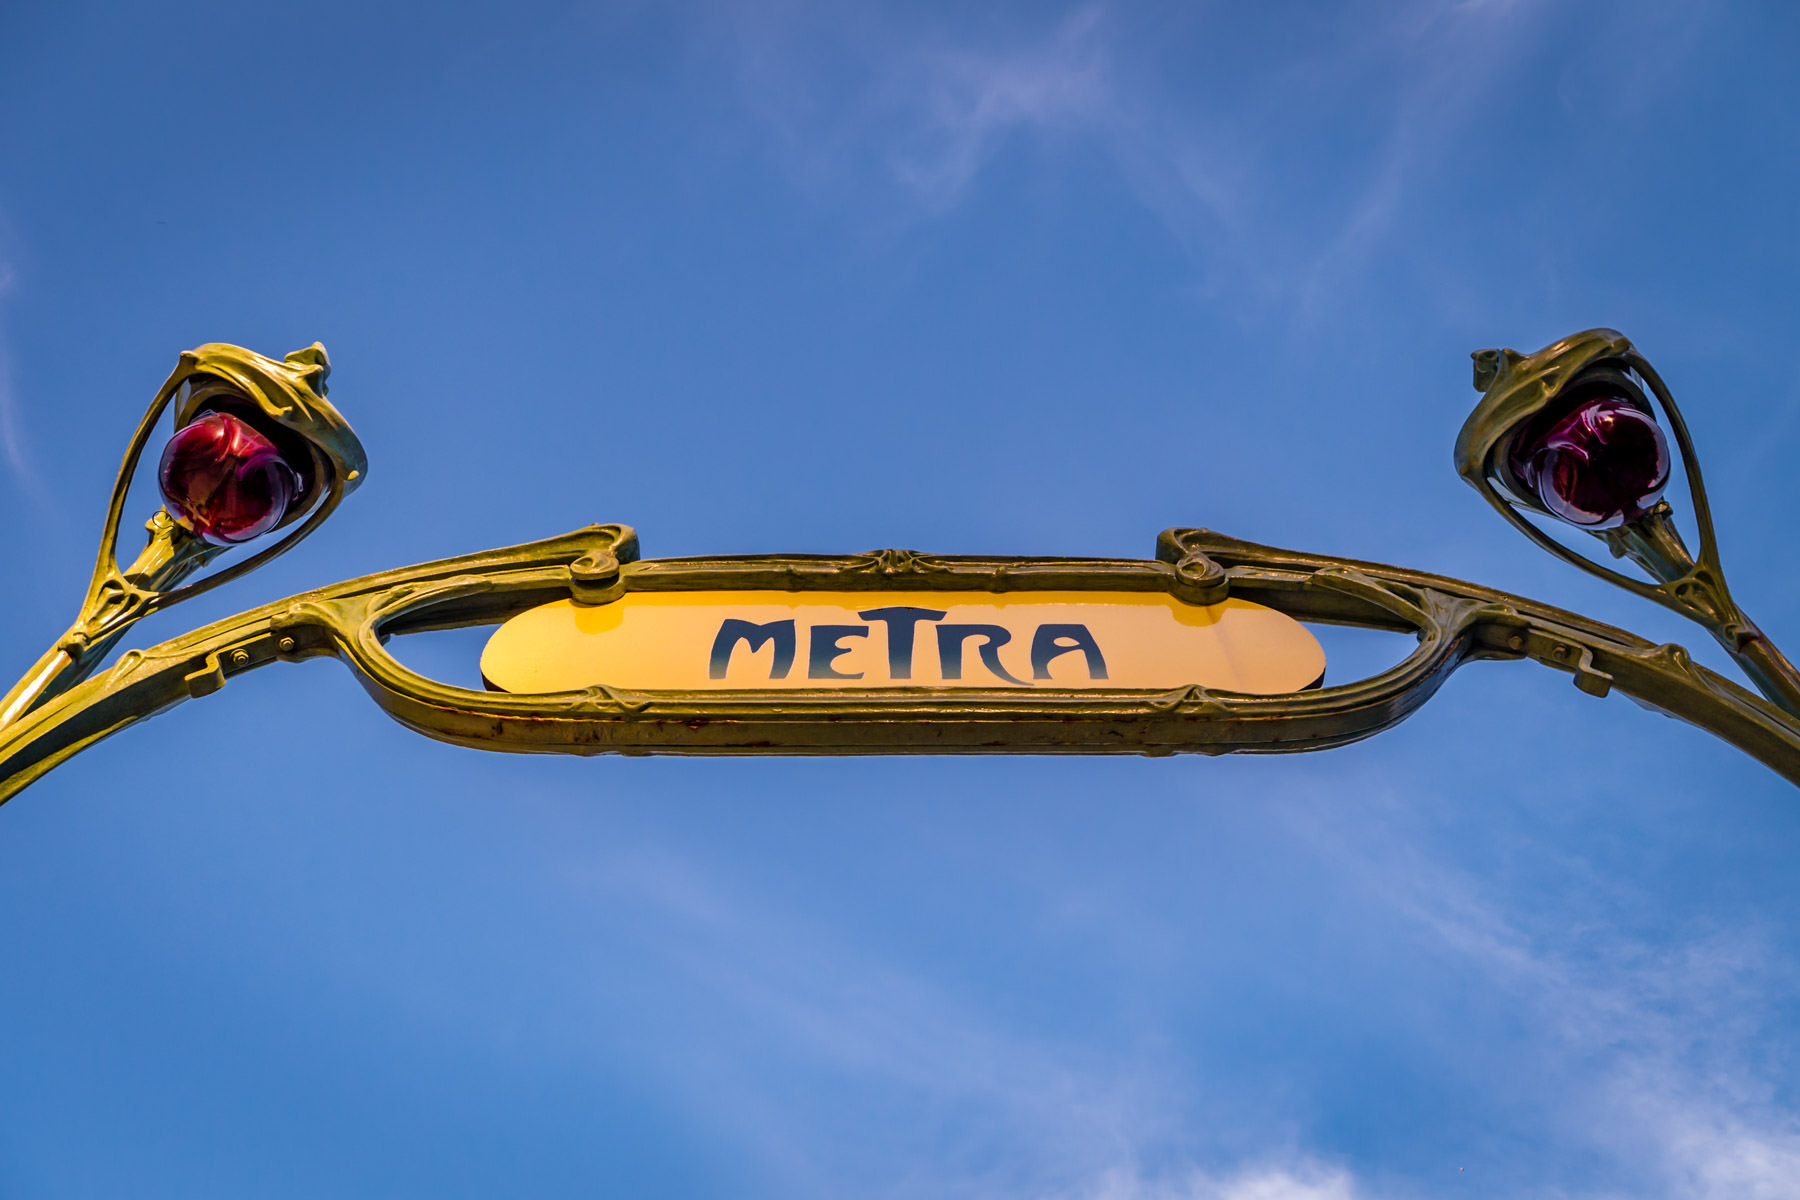 A replica of an Art Nouveau-styled Paris Métro sign—a gift from the city of Paris—greets passengers at Chicago's Van Buren Street Metra Station.